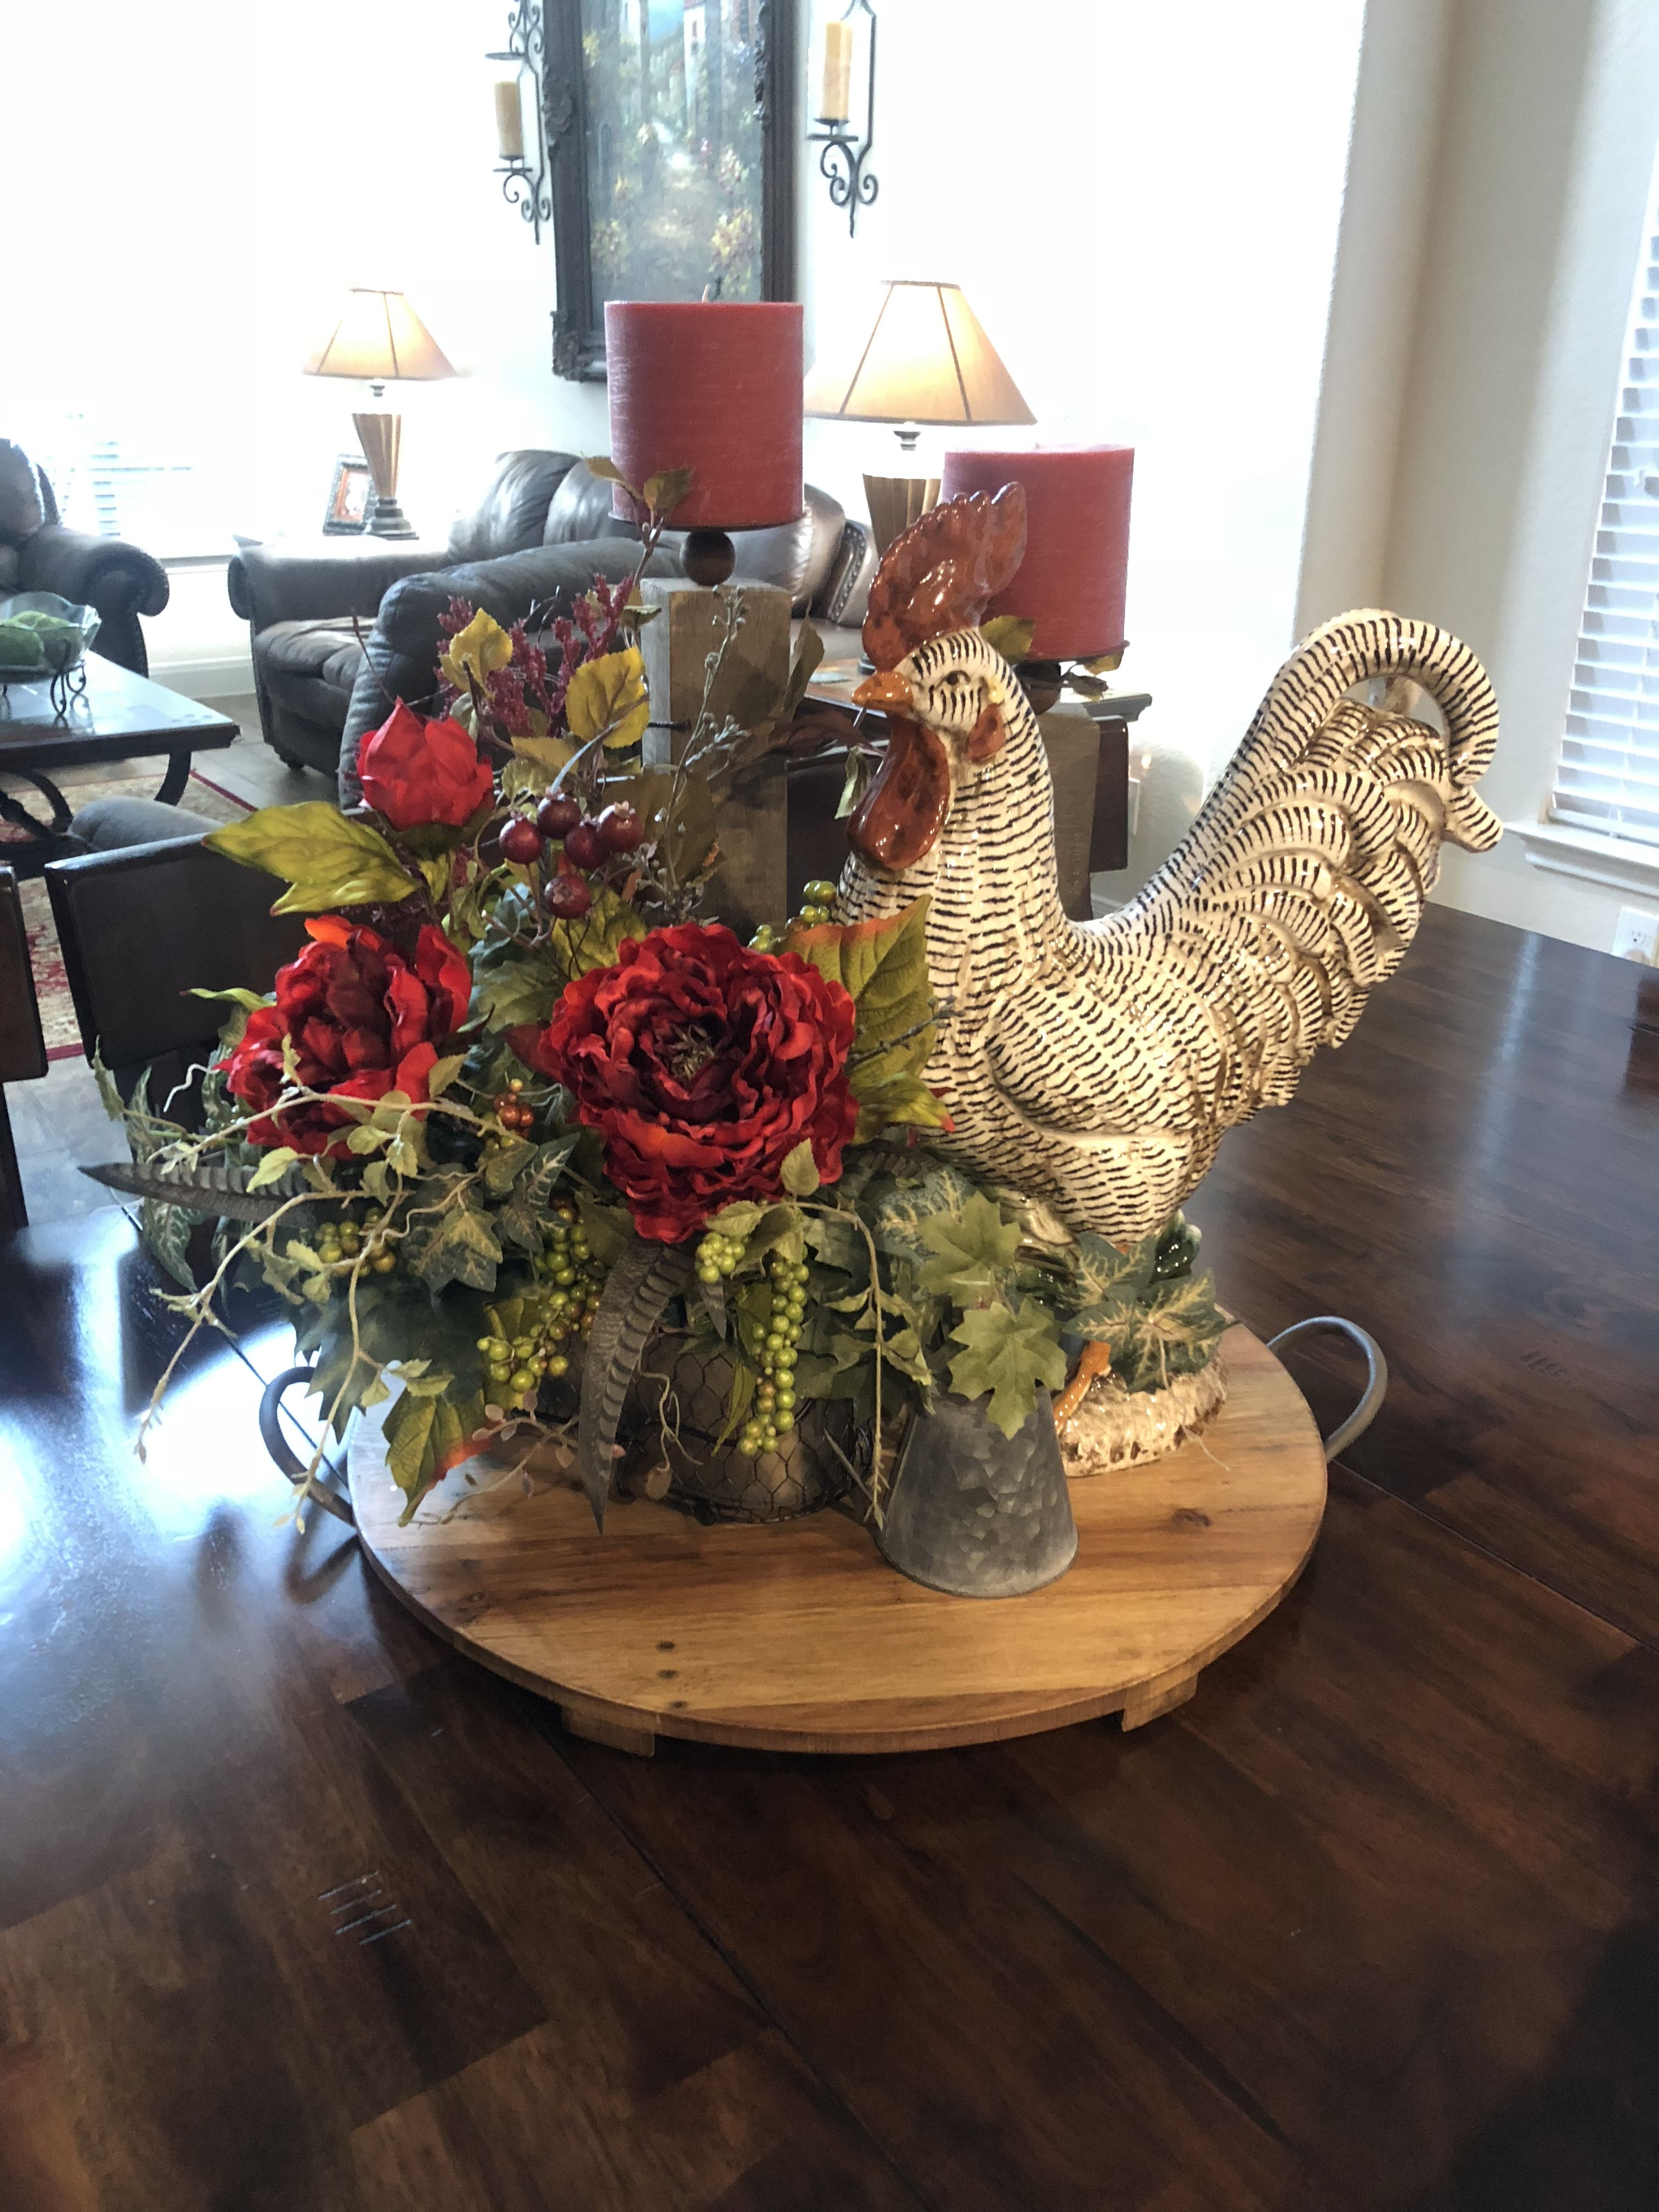 Rooster Decor In Living Room: Tuscan Decor In 2019